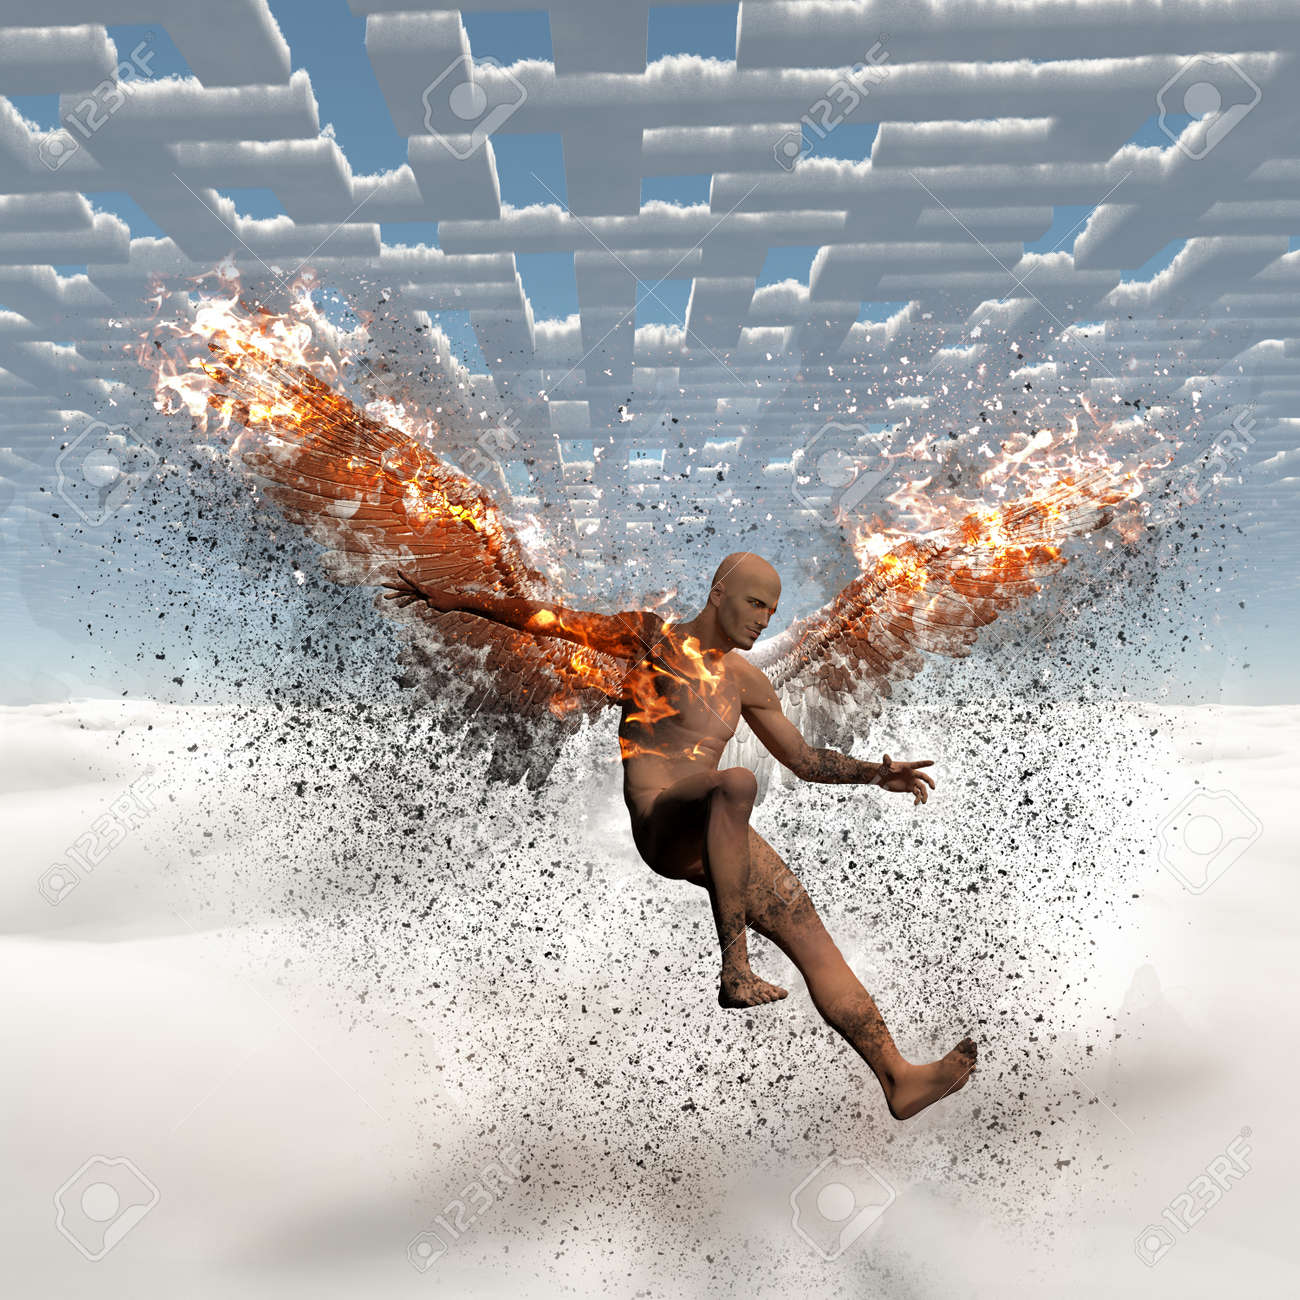 Surrealism  Naked man with burning wings falls down from cloudy